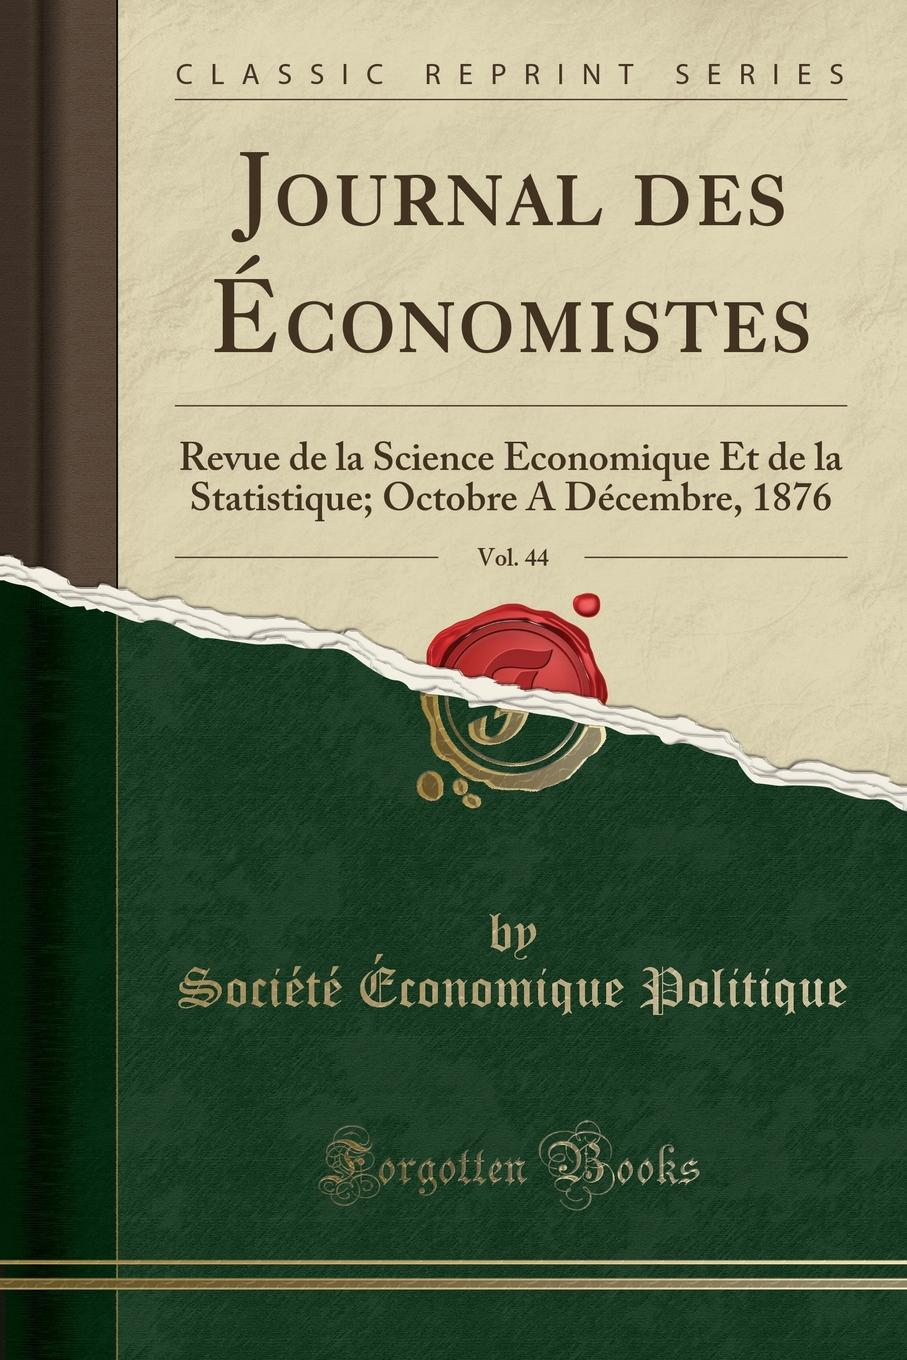 Journal des Economistes, Vol. 44. Revue de la Science Economique Et de la Statistique; Octobre A Decembre, 1876 (Classic Reprint) Excerpt from Journal desР?conomistes, Vol. 44: Revue de la Science...